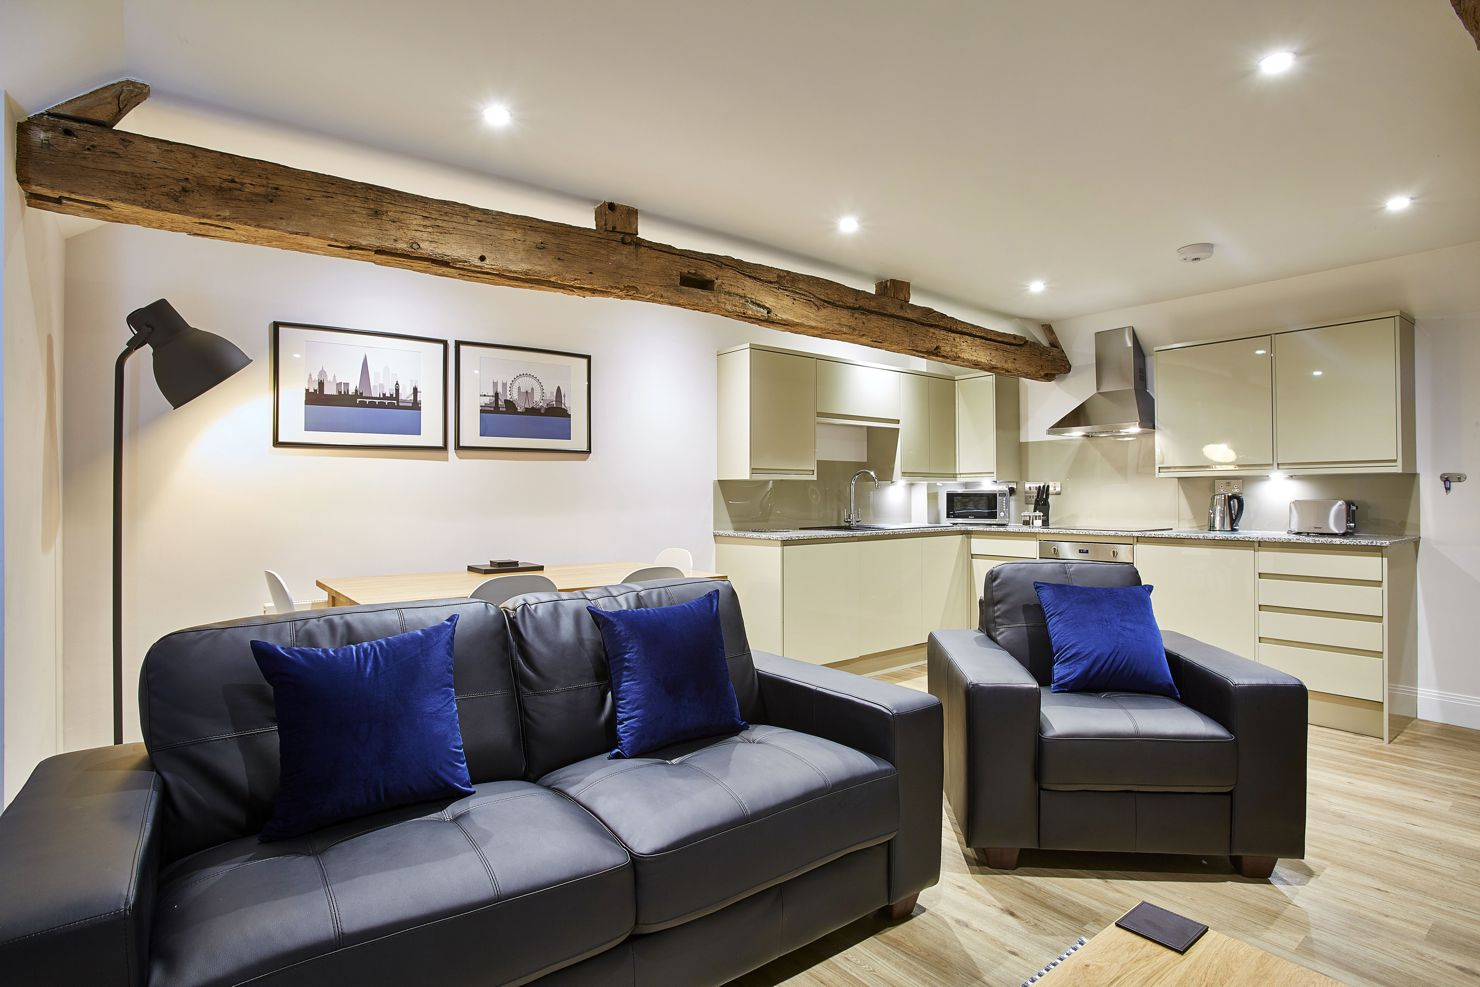 Amazing-Self-Catering-Accommodation-Newbury!-Centrally-located-Serviced-Apartments-Newbury-and-corporate-accommodation-UK.-Competitive-Rates-·-No-Booking-Fees-·-Free-Wi-Fi-·-Fully-Furnished-·-Fully-equipped-kitchen-·-Weekly-cleaning-included.-Call-Urban-Stay-now:-+44-(0)-208-691-3920